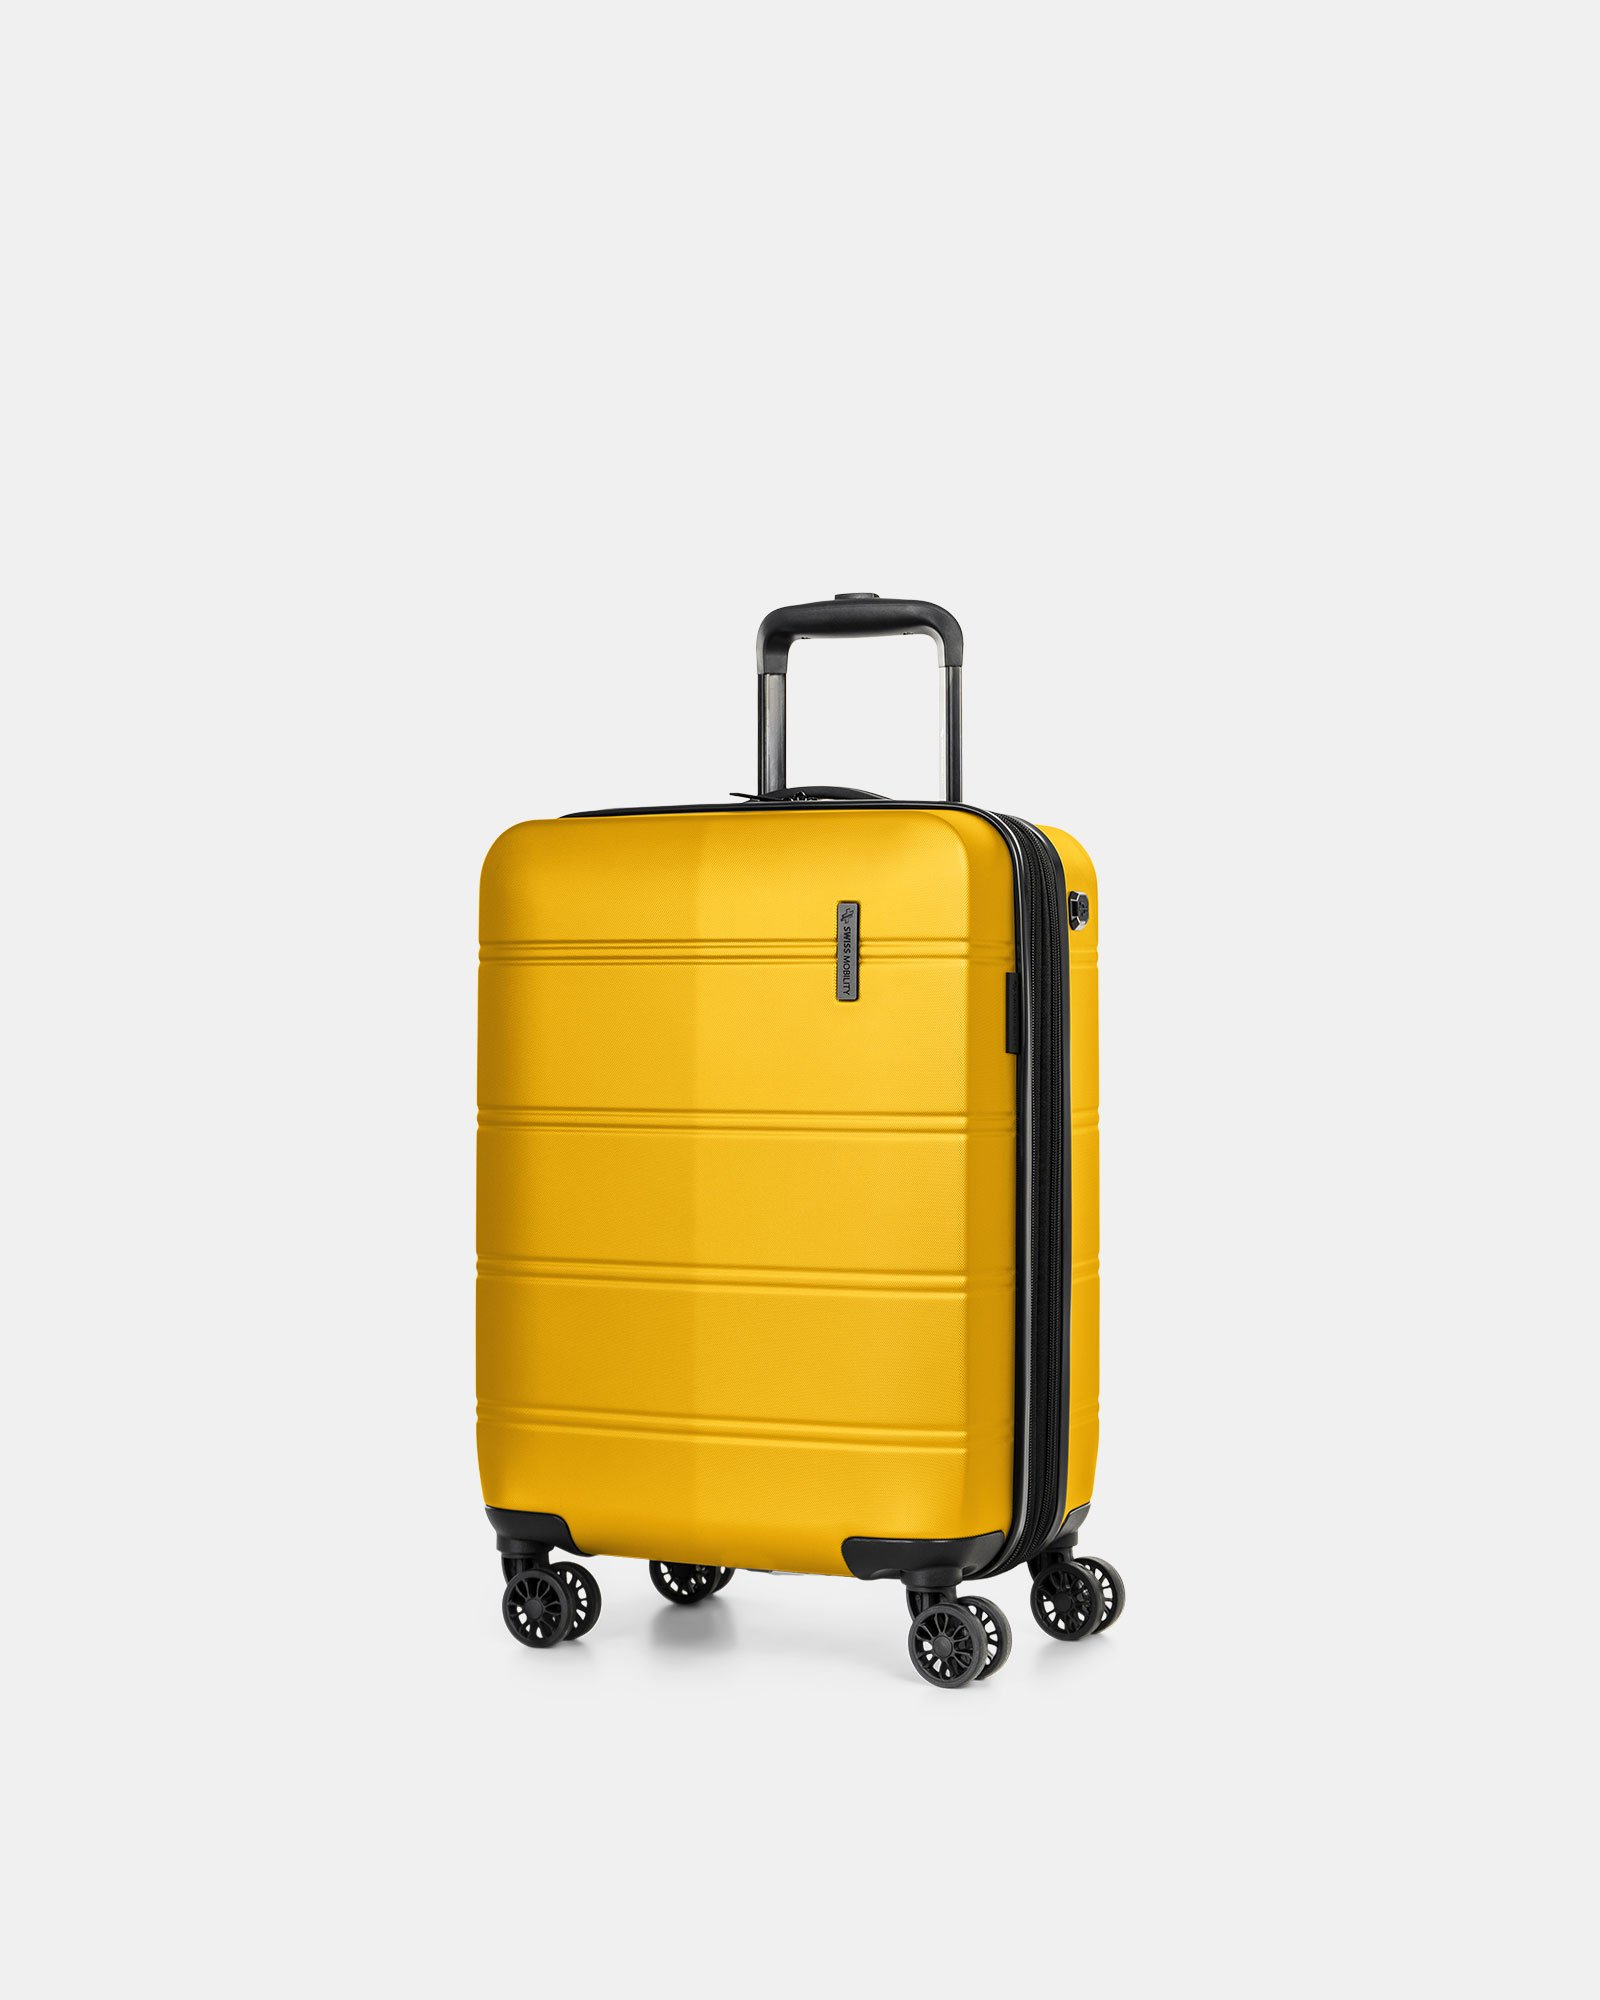 """LAX - 21.5"""" HARDSIDE CARRY-ON WITH integrated USB port - YELLOW - Swiss Mobility - Zoom"""